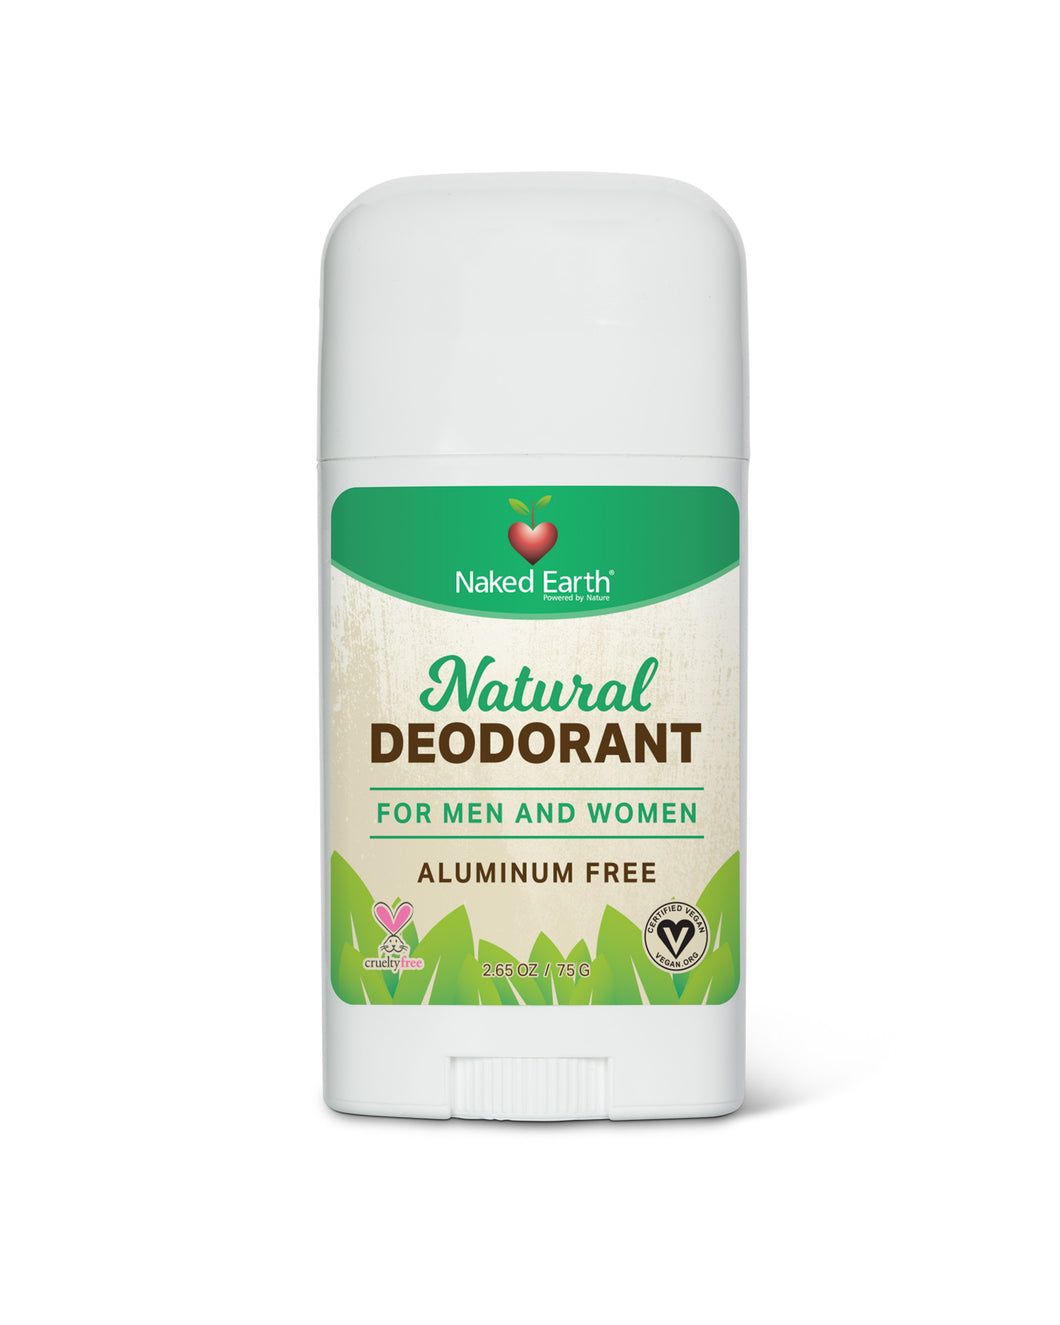 Naked Earth's Natural Deodorant for Men and Women